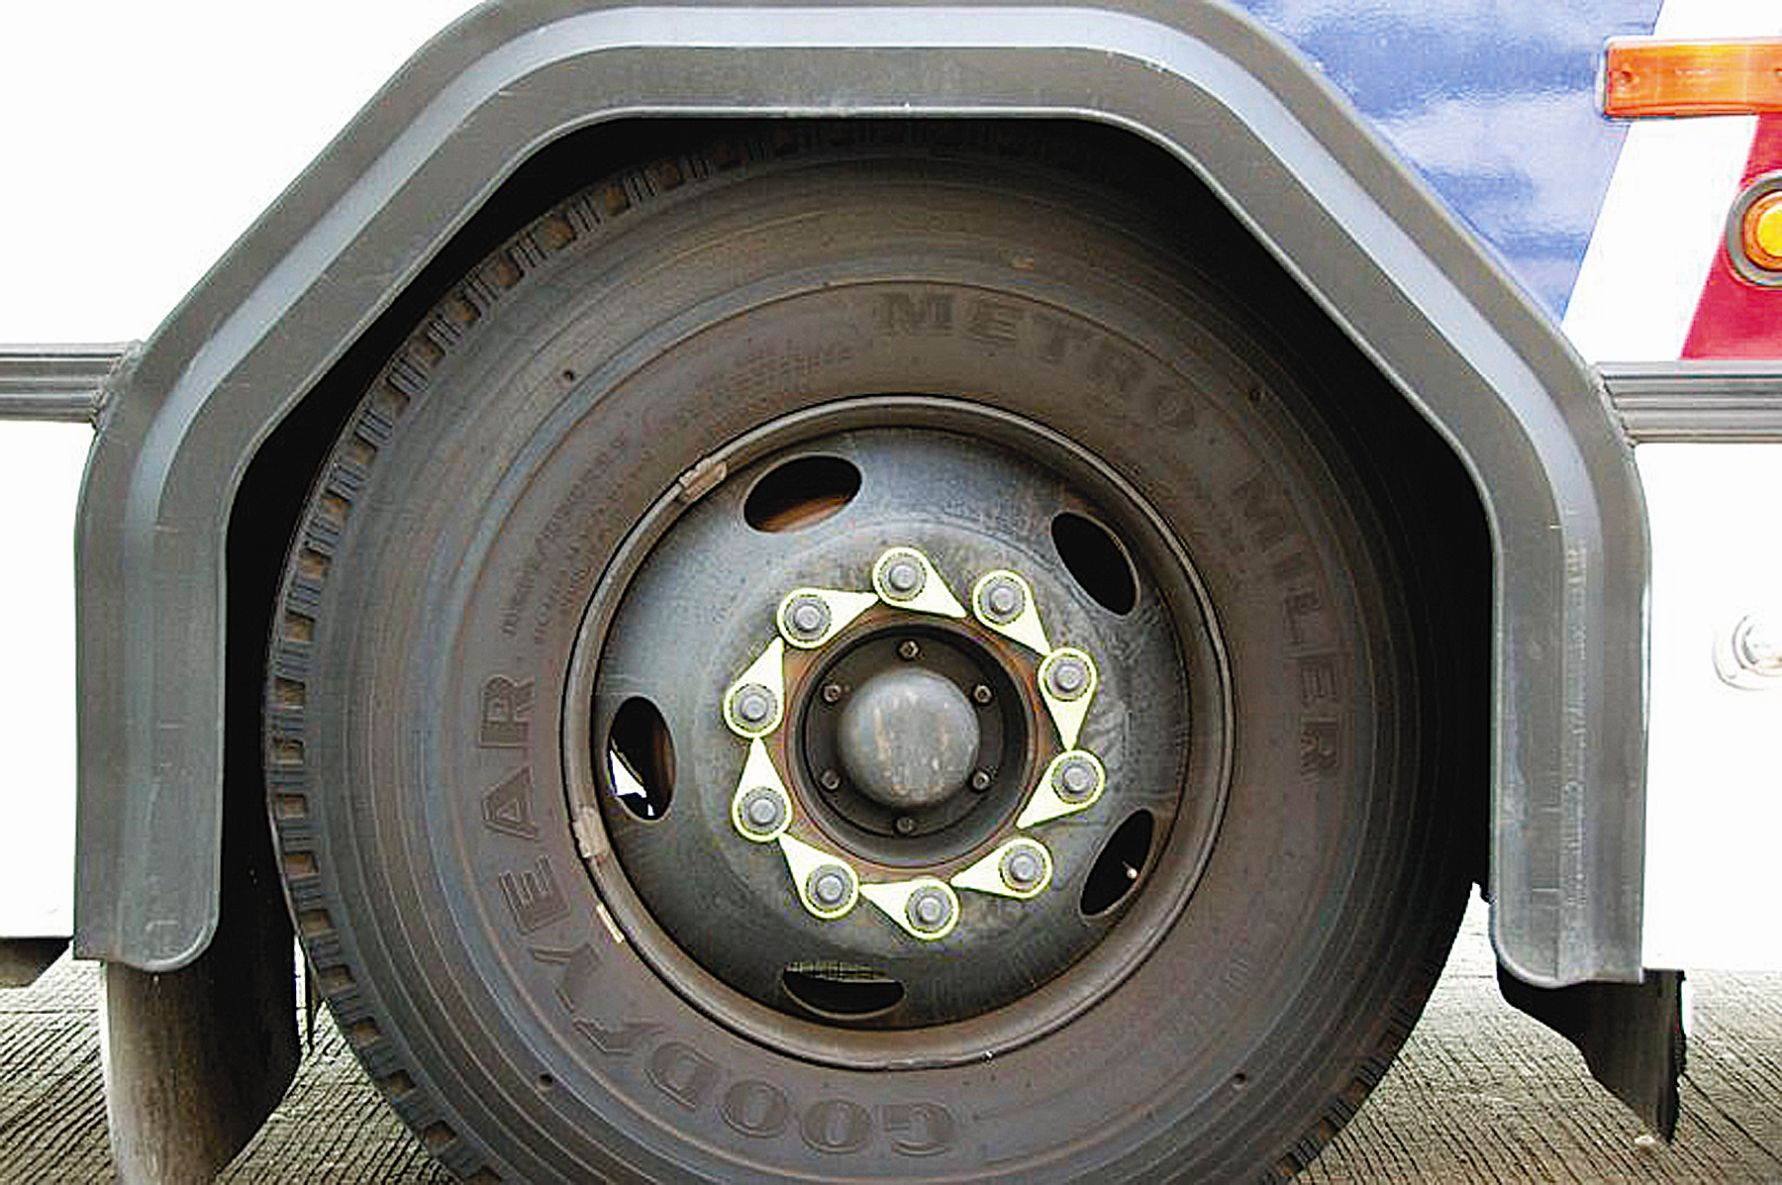 Checked Your Lug Nuts Lately?